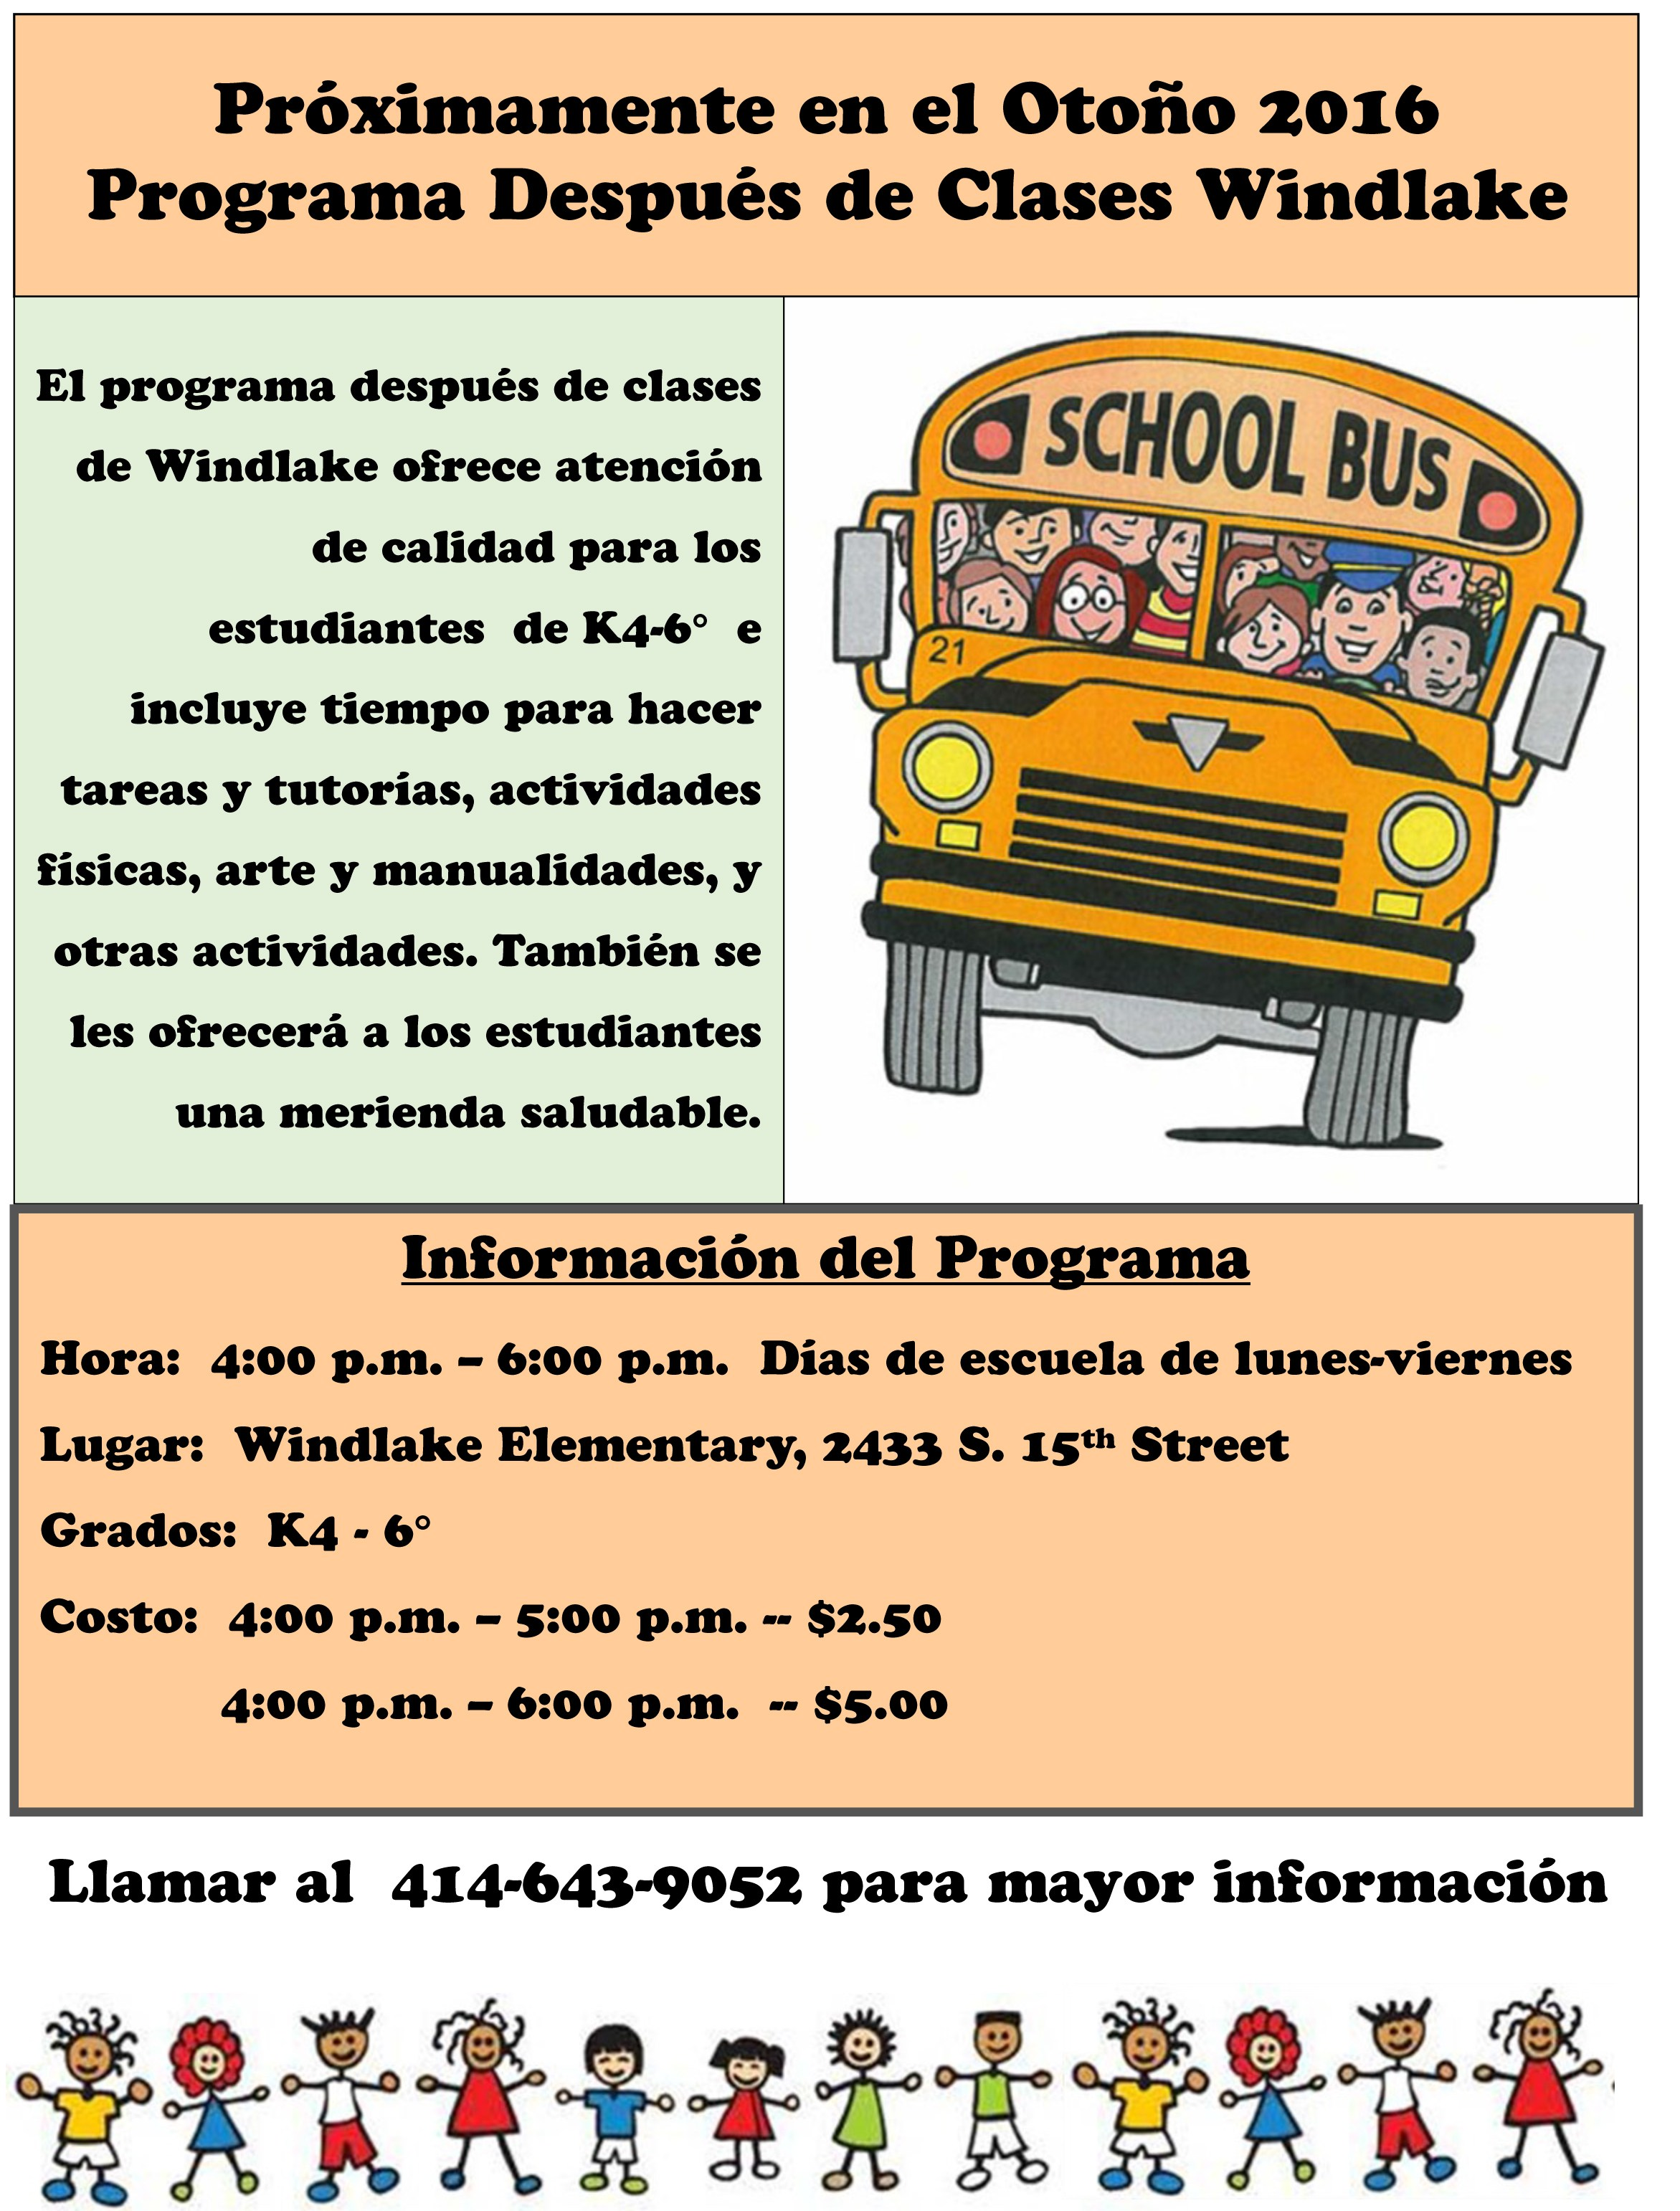 After school program flyer in Spanish. Call for details